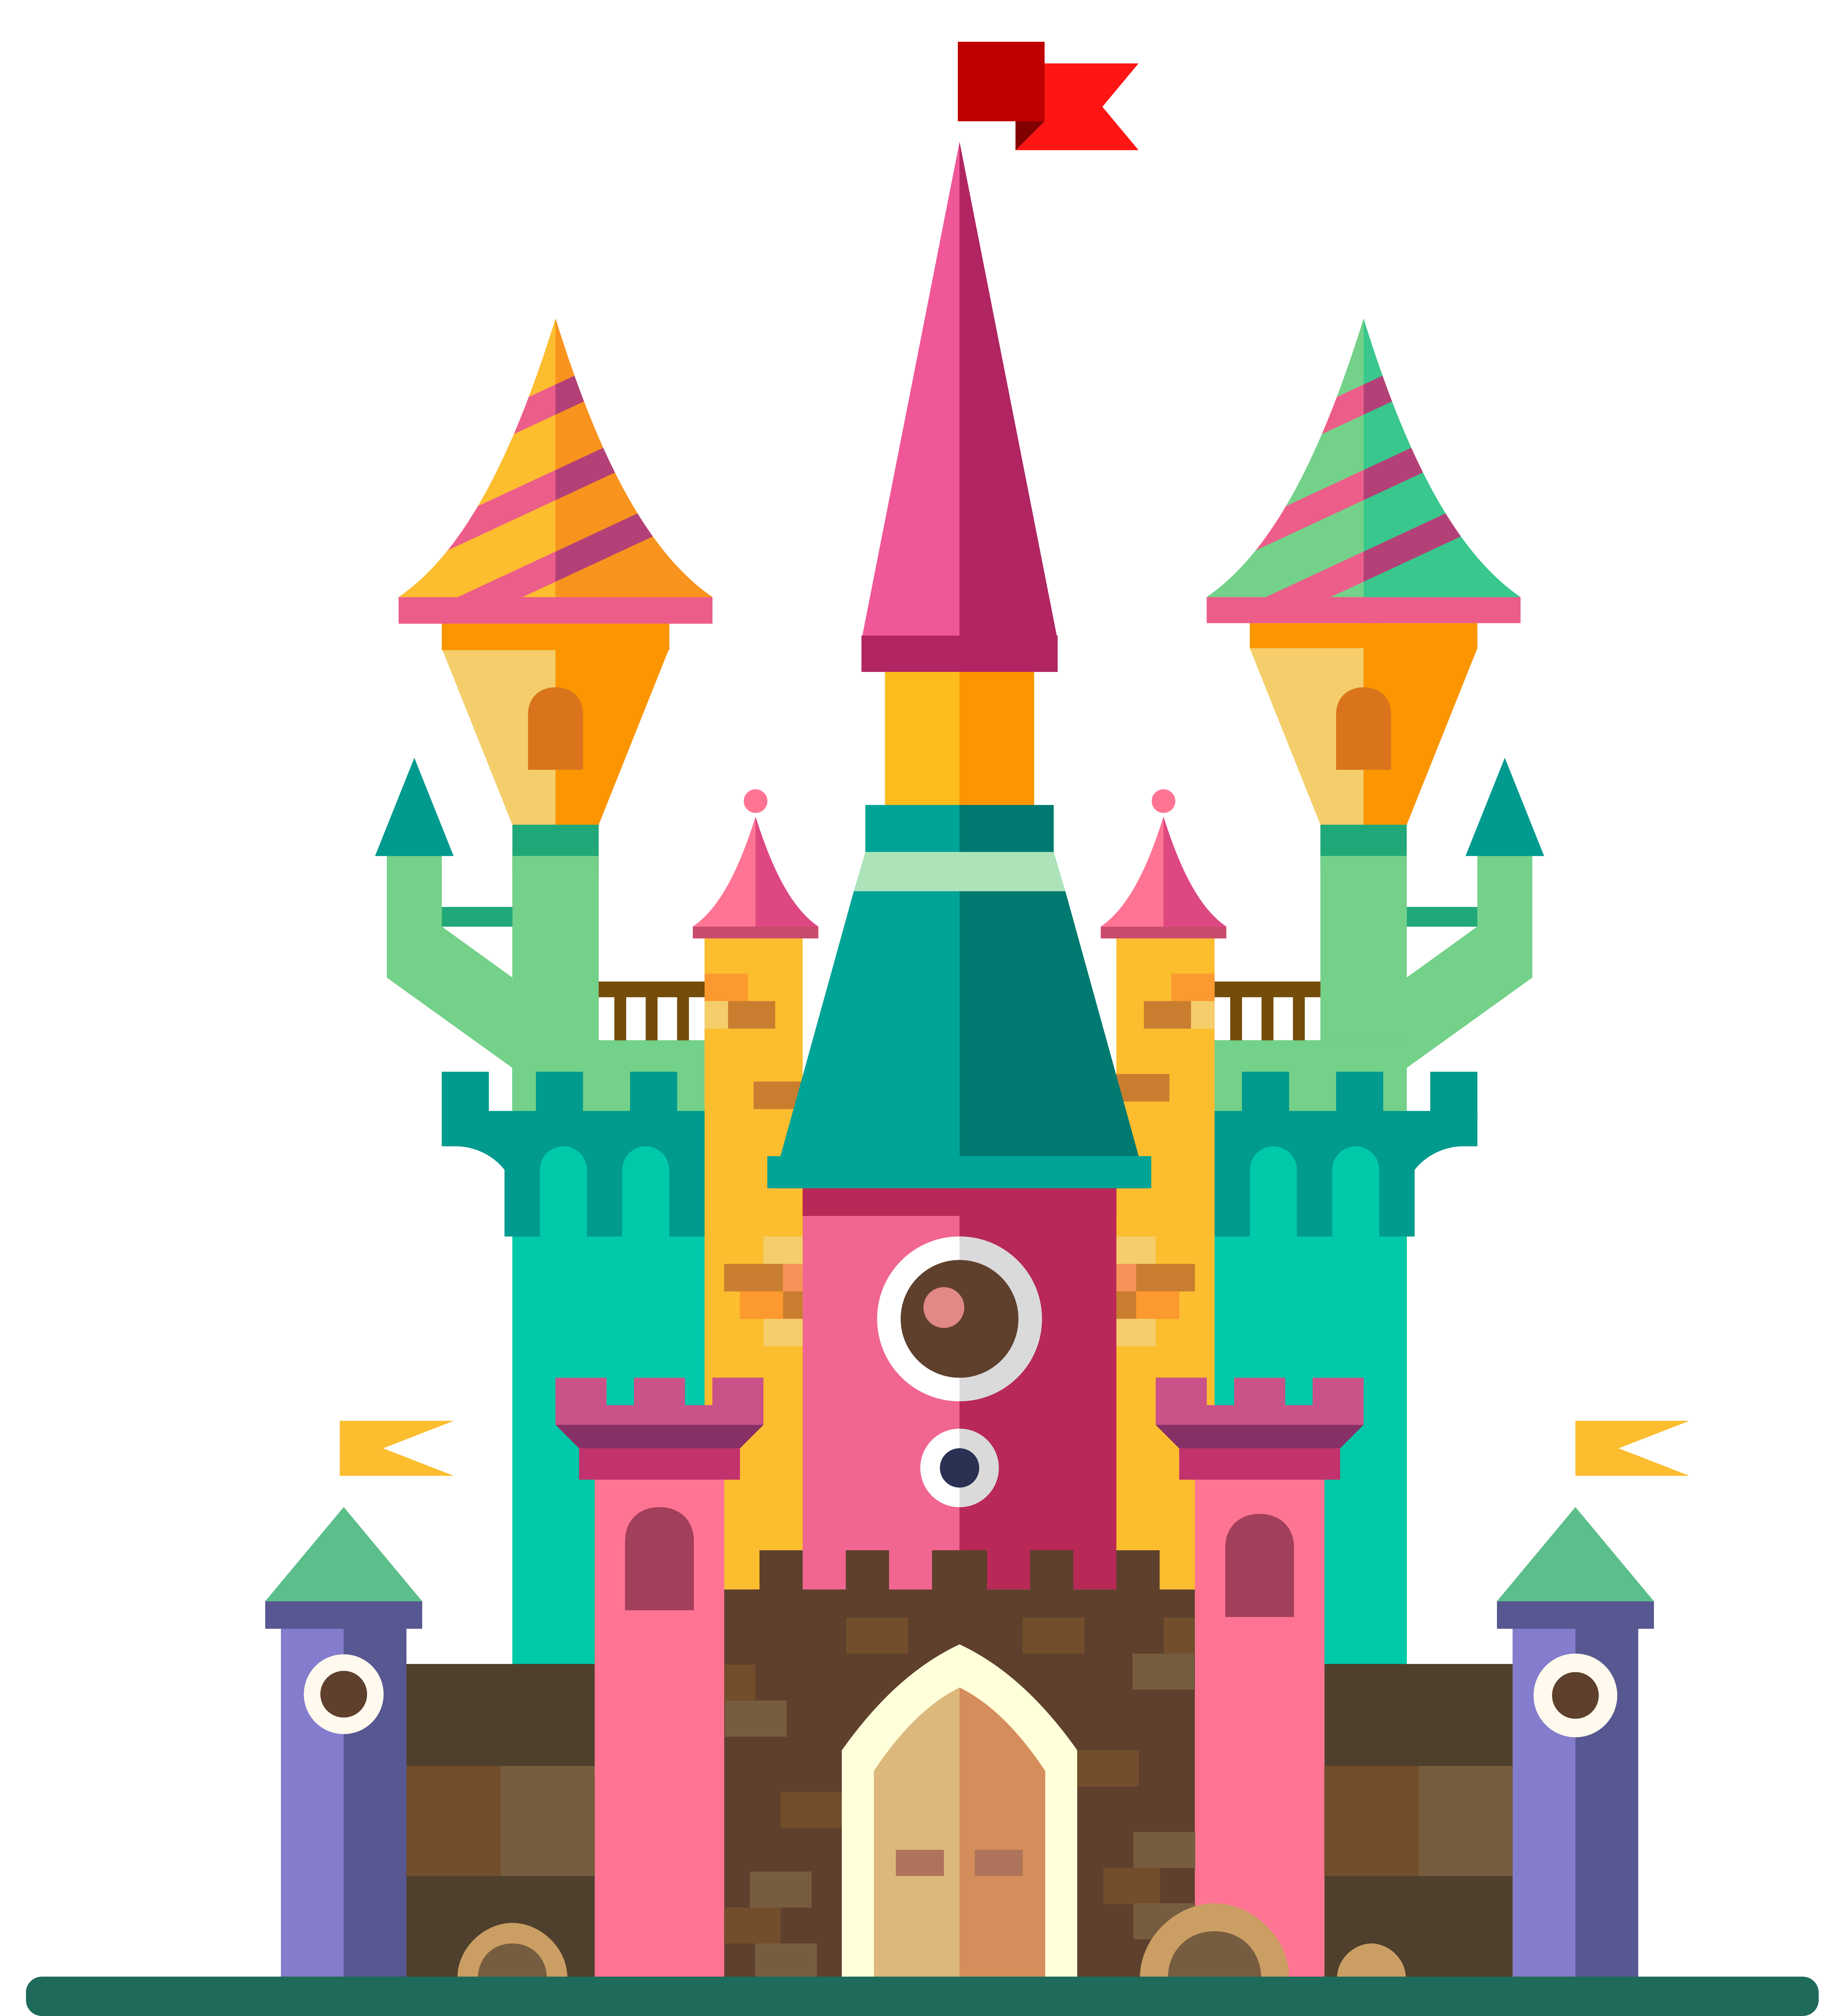 Magic clipart vector png. Cute castle image gallery